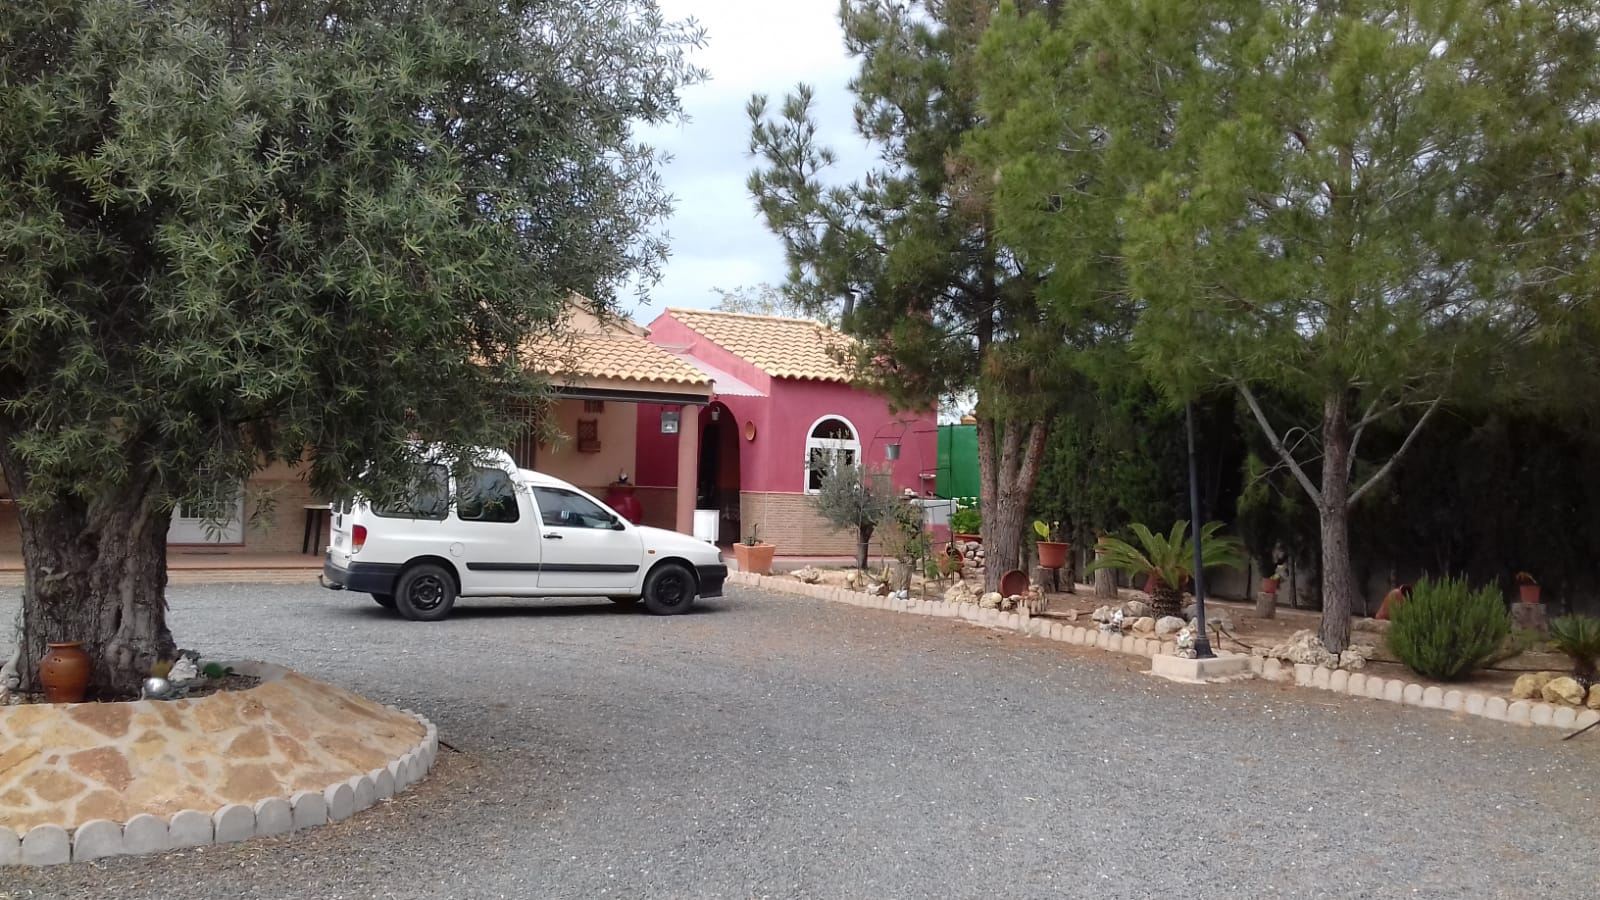 Ref:kf943657 Country House or Finca For Sale in Sangonera la Seca